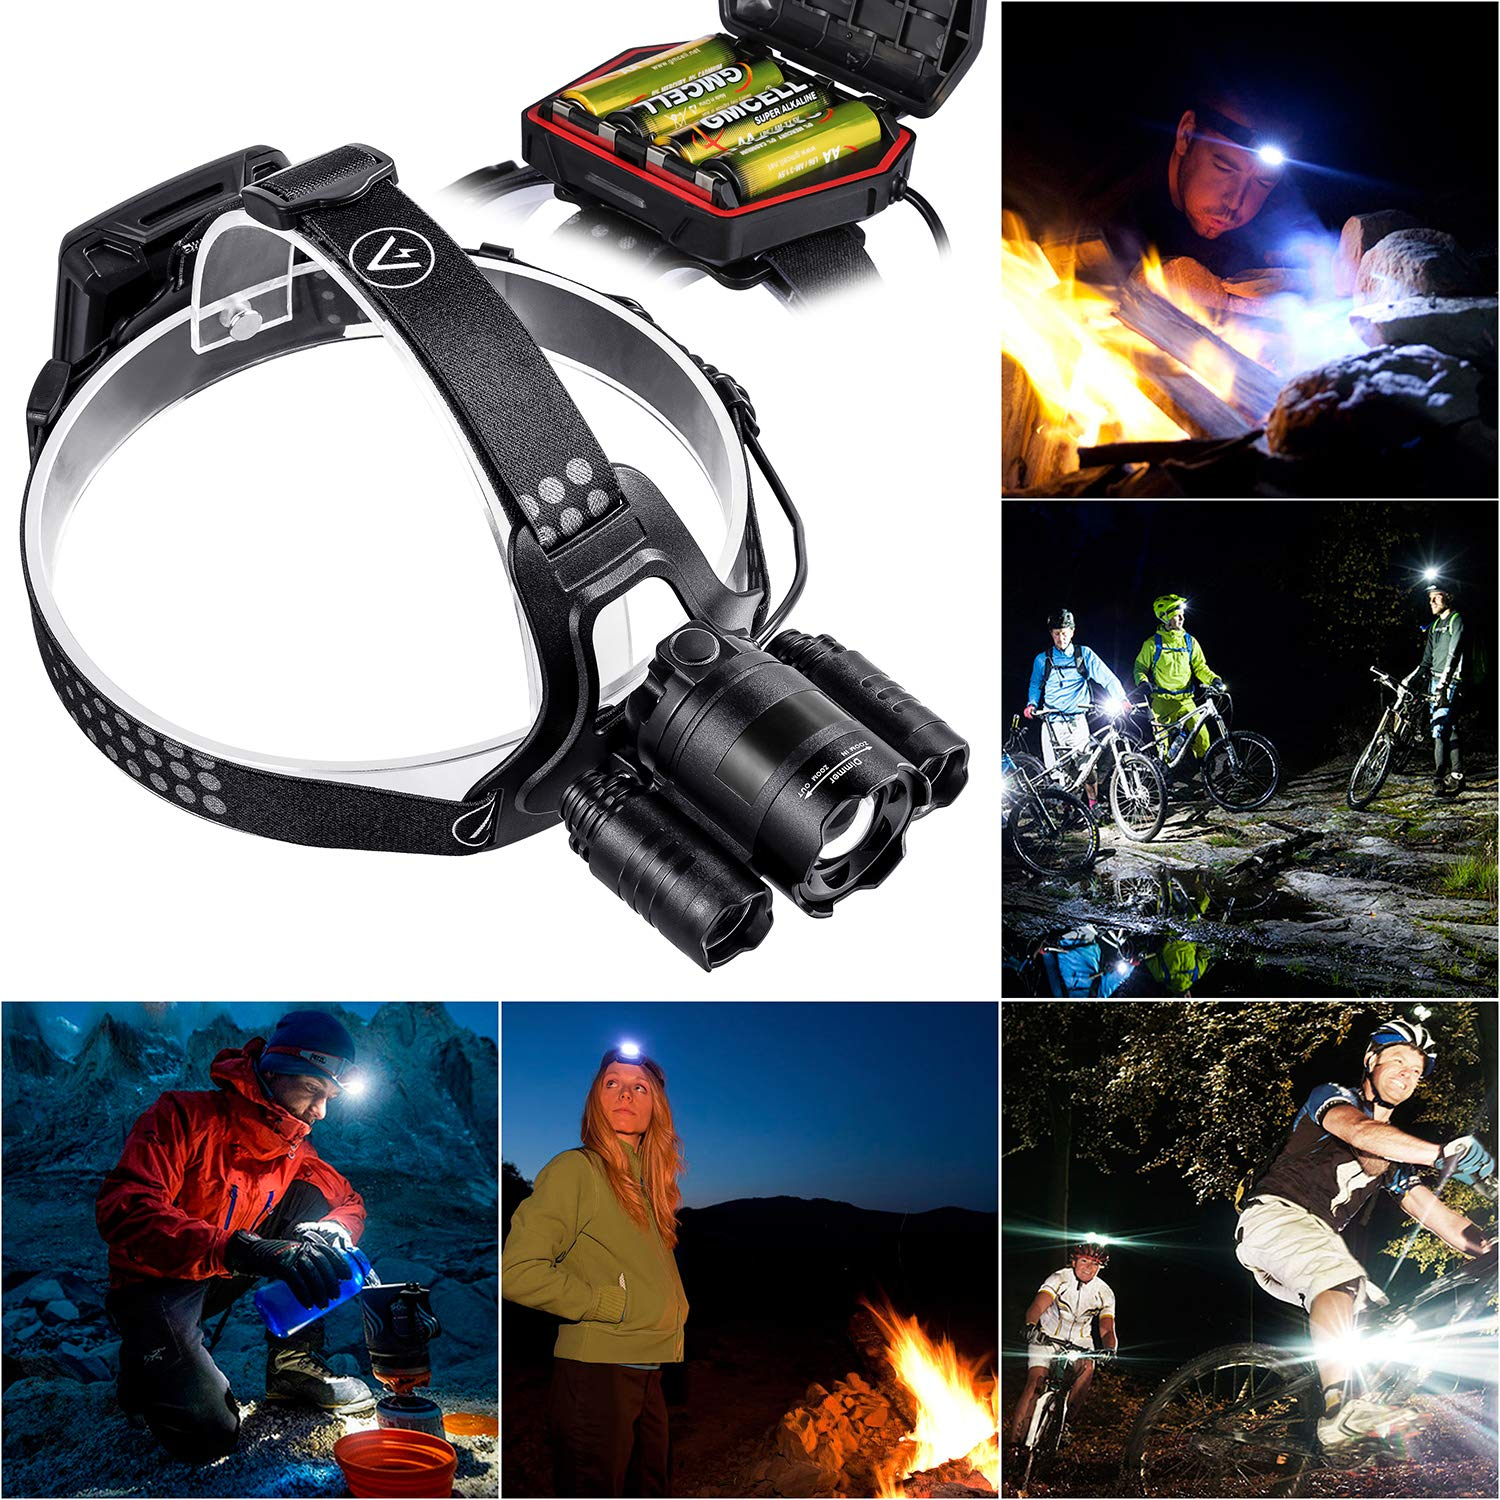 IP65 Water-Resistant AA Battery Included Akale Super Bright LED Headlights LED Headlamp Security Zoomable Emergency Use Night Readin 5 Light Modes for Camping